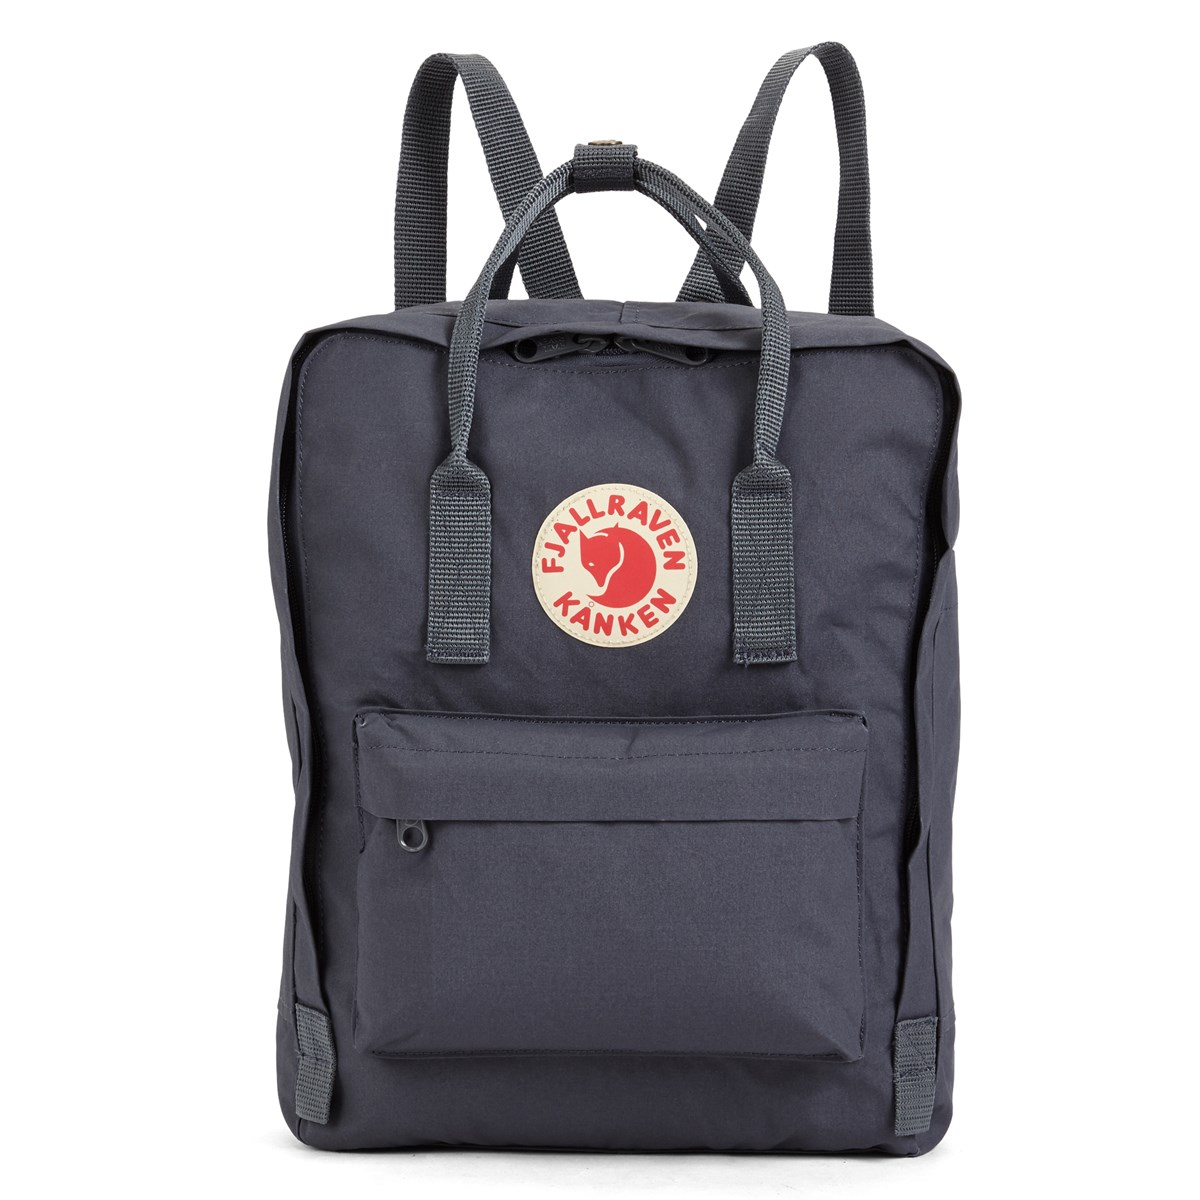 Kanken Backpack in Dark Grey